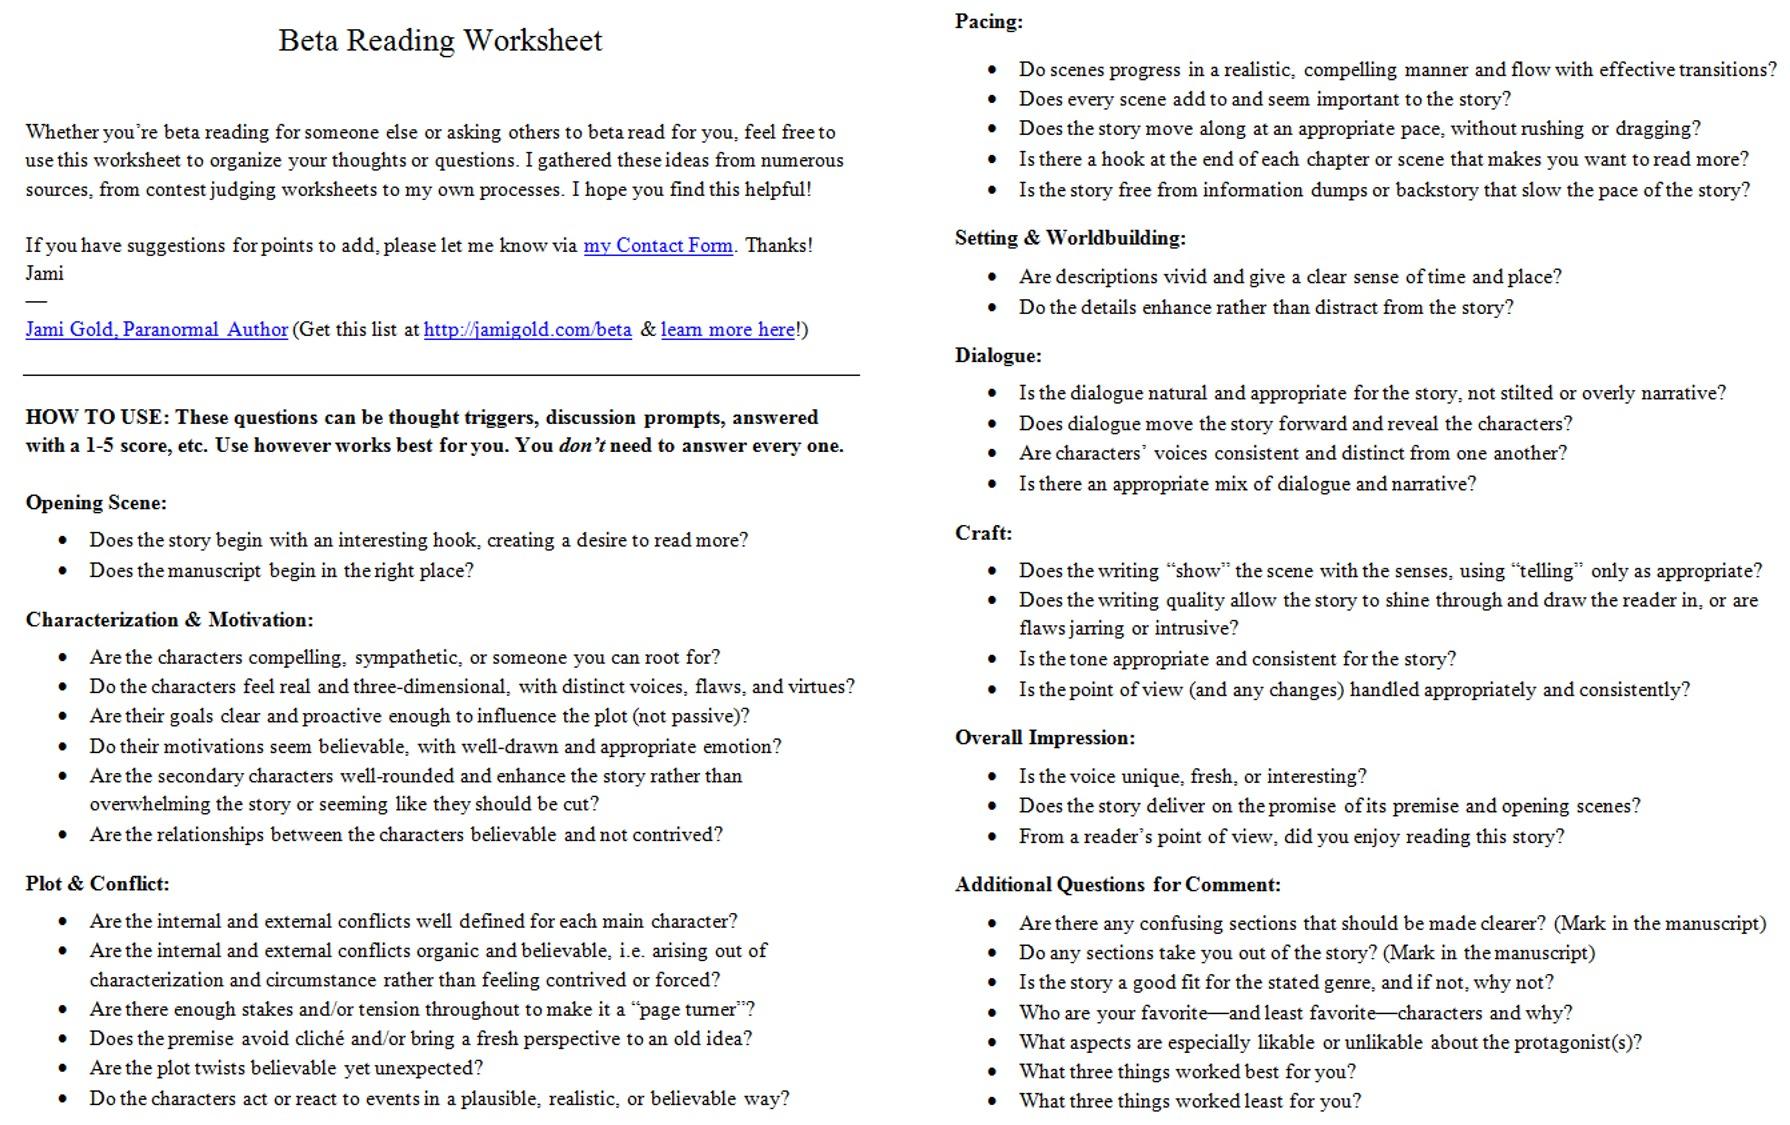 Weirdmailus  Wonderful Worksheets For Writers  Jami Gold Paranormal Author With Exciting Screen Shot Of The Twopage Beta Reading Worksheet With Charming Excel Center Worksheet Also Water Cycle Worksheets In Addition Short A Worksheets And    Triangle Worksheet As Well As Kids Math Worksheets Additionally Section  Composition Of Matter Worksheet Answers From Jamigoldcom With Weirdmailus  Exciting Worksheets For Writers  Jami Gold Paranormal Author With Charming Screen Shot Of The Twopage Beta Reading Worksheet And Wonderful Excel Center Worksheet Also Water Cycle Worksheets In Addition Short A Worksheets From Jamigoldcom